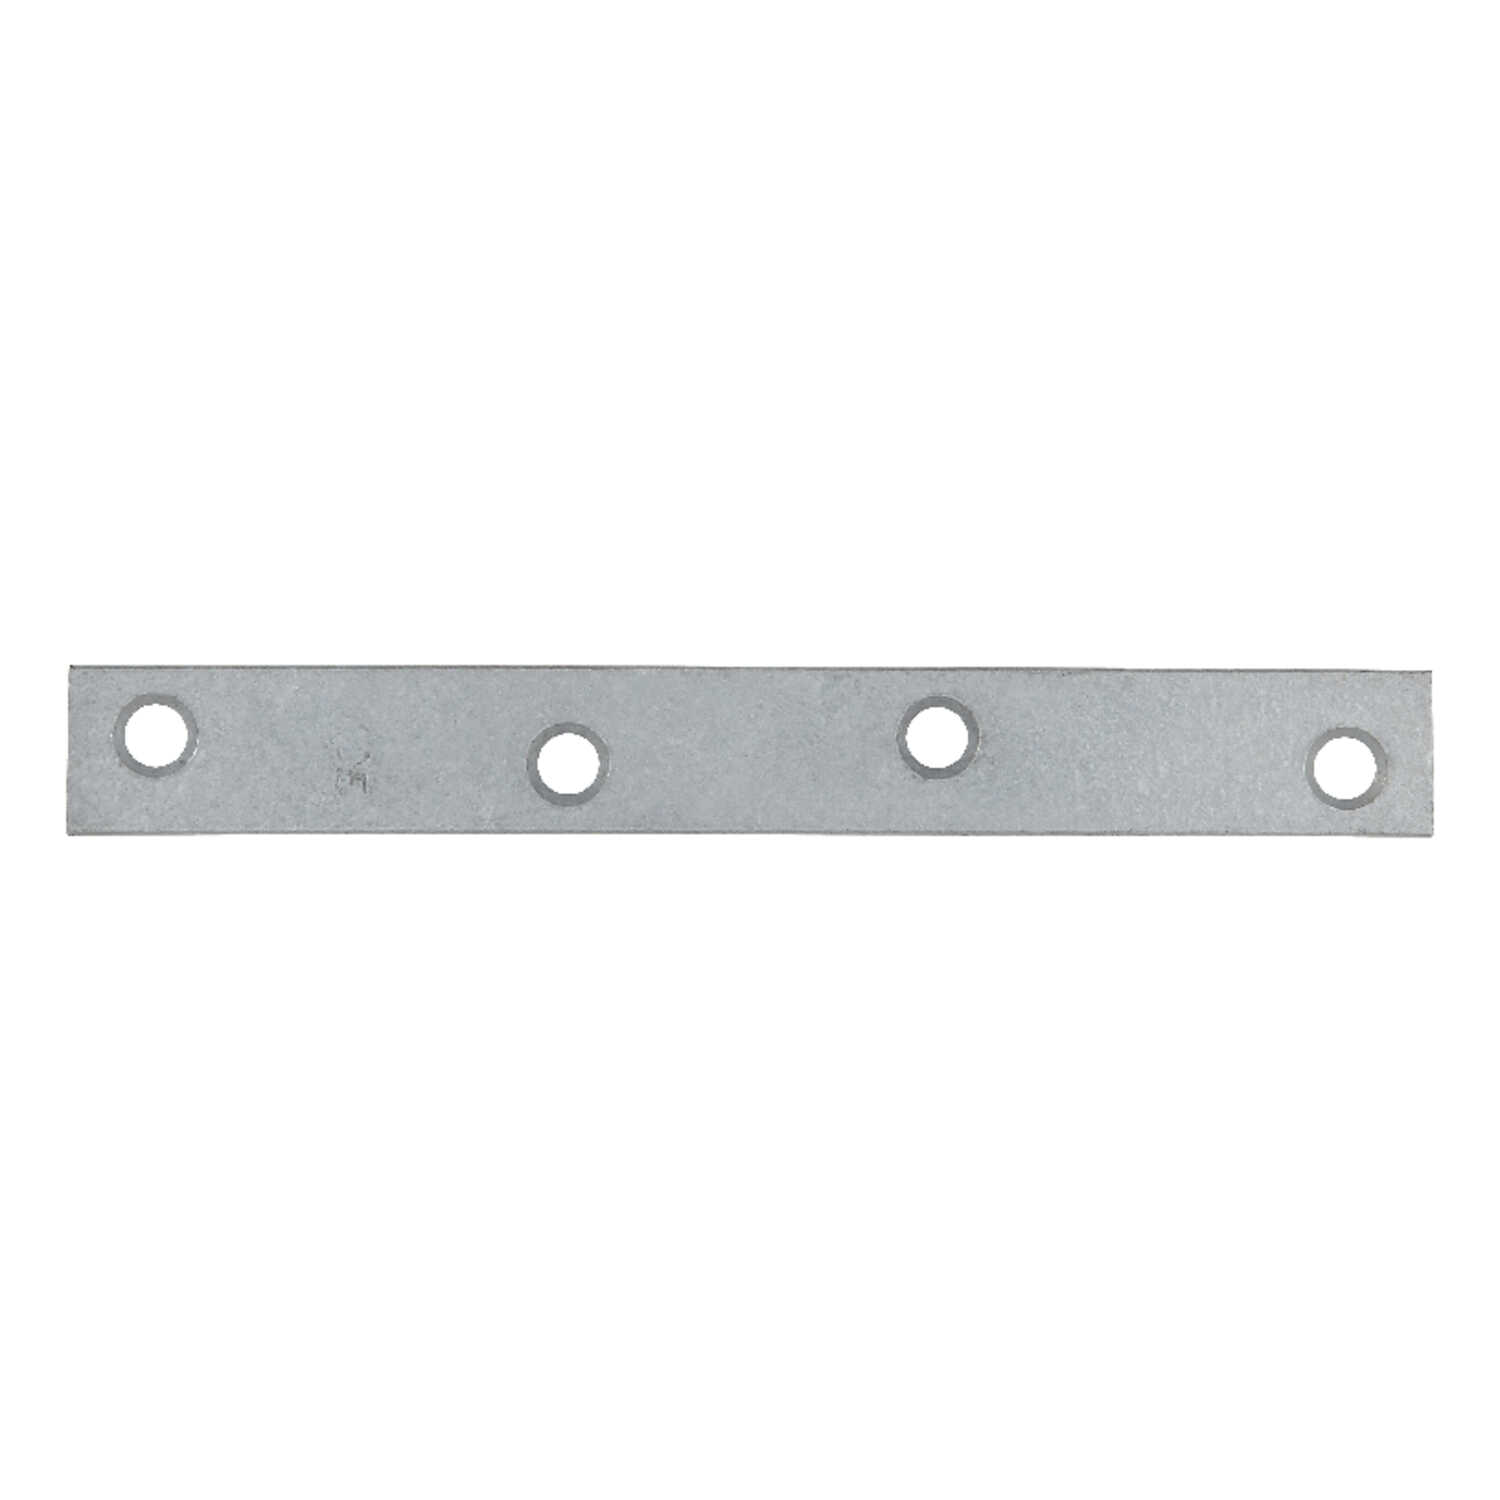 Ace  6 in. H x 0.75 in. W x .131 in. L Galvanized  Steel  Mending Brace